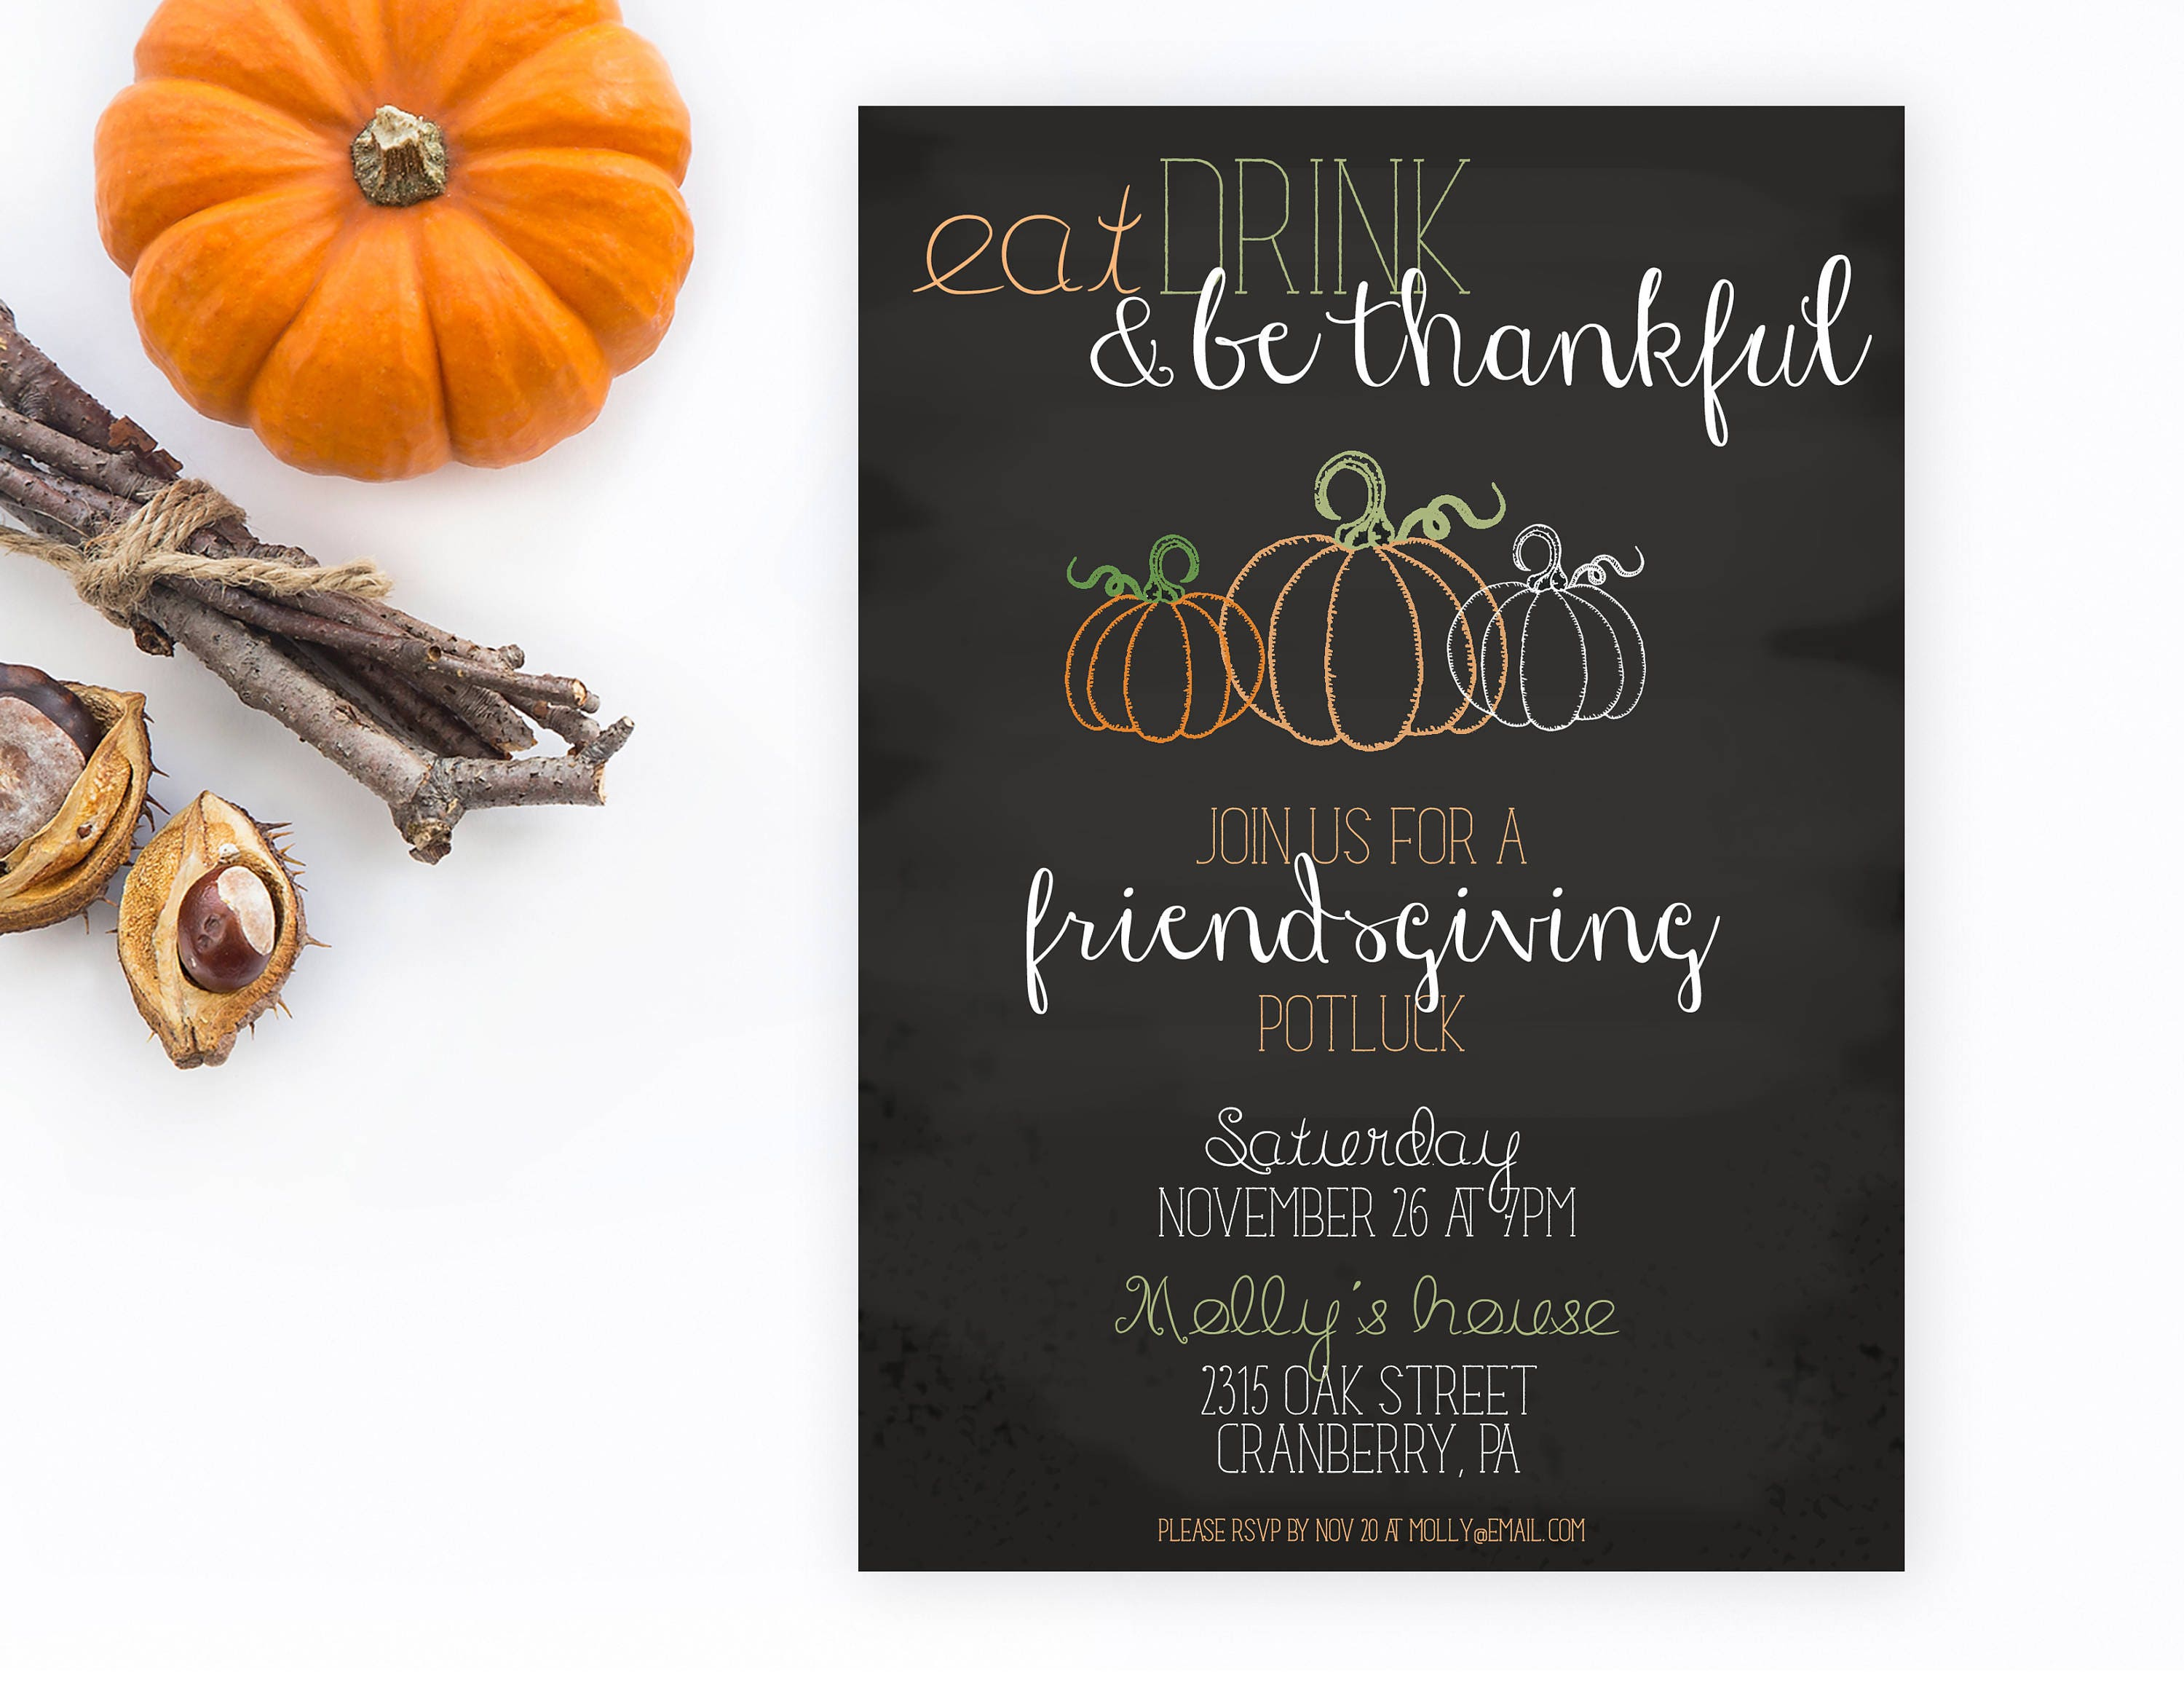 Friendsgiving Friendsgiving Invitations Friendsgiving